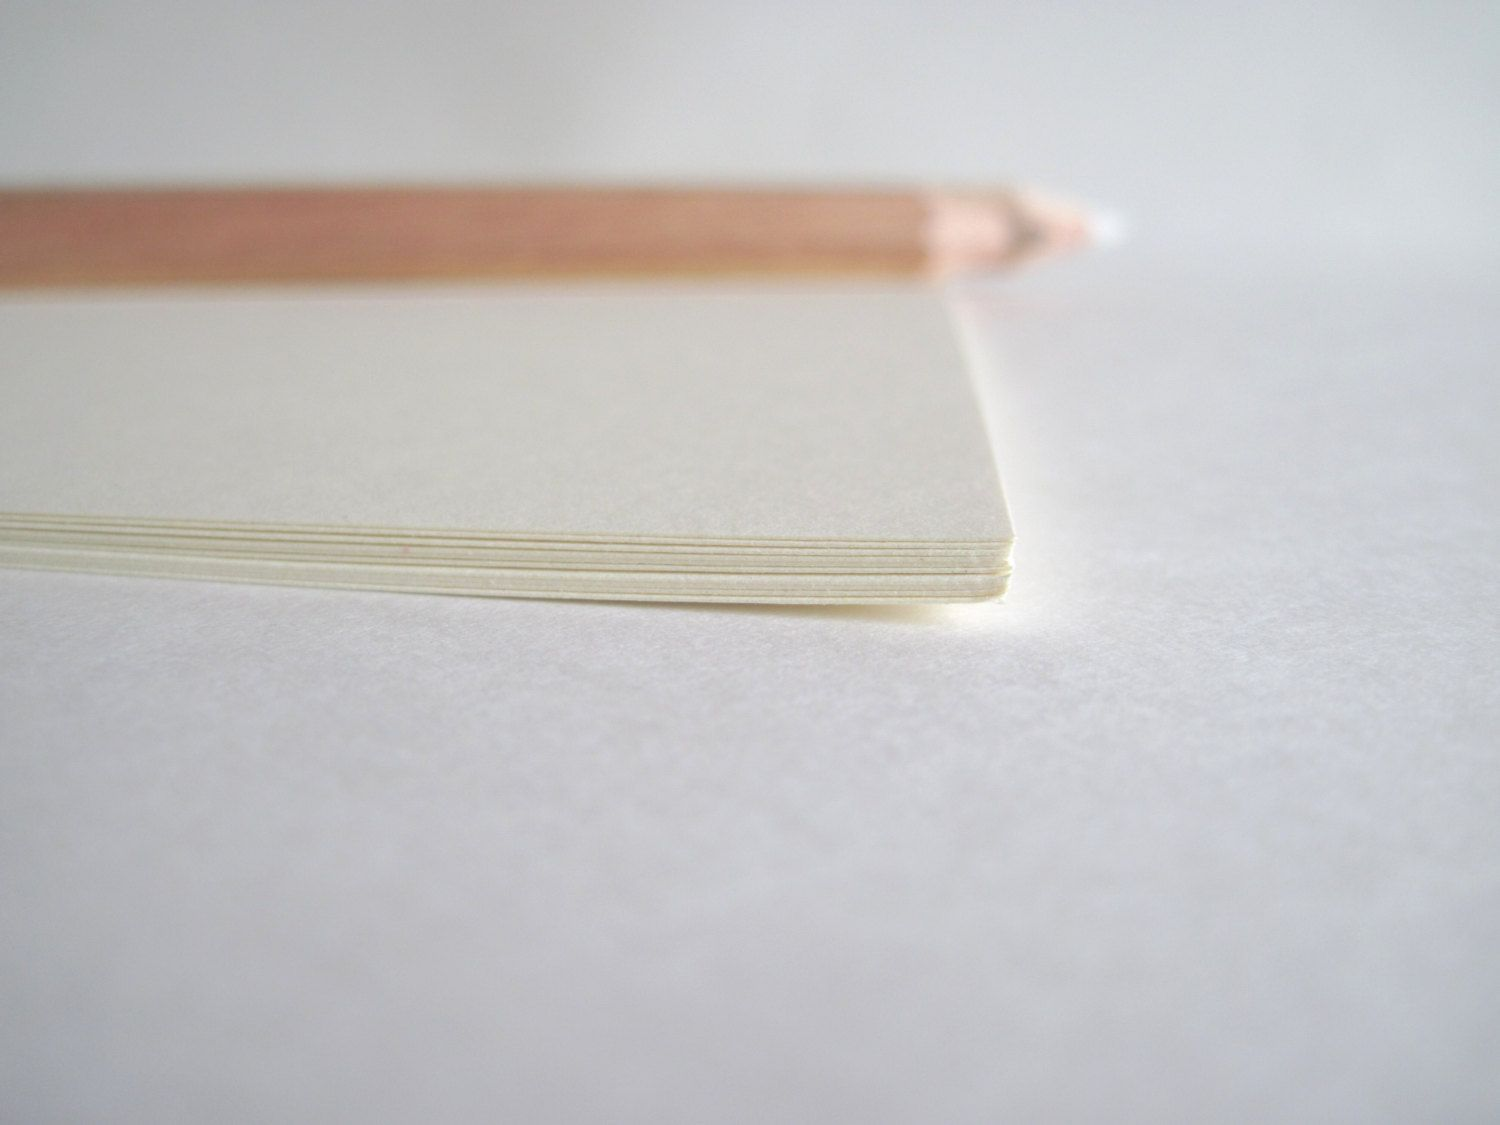 cardstock paper 65 lb thickness 85 x 11 inches pack